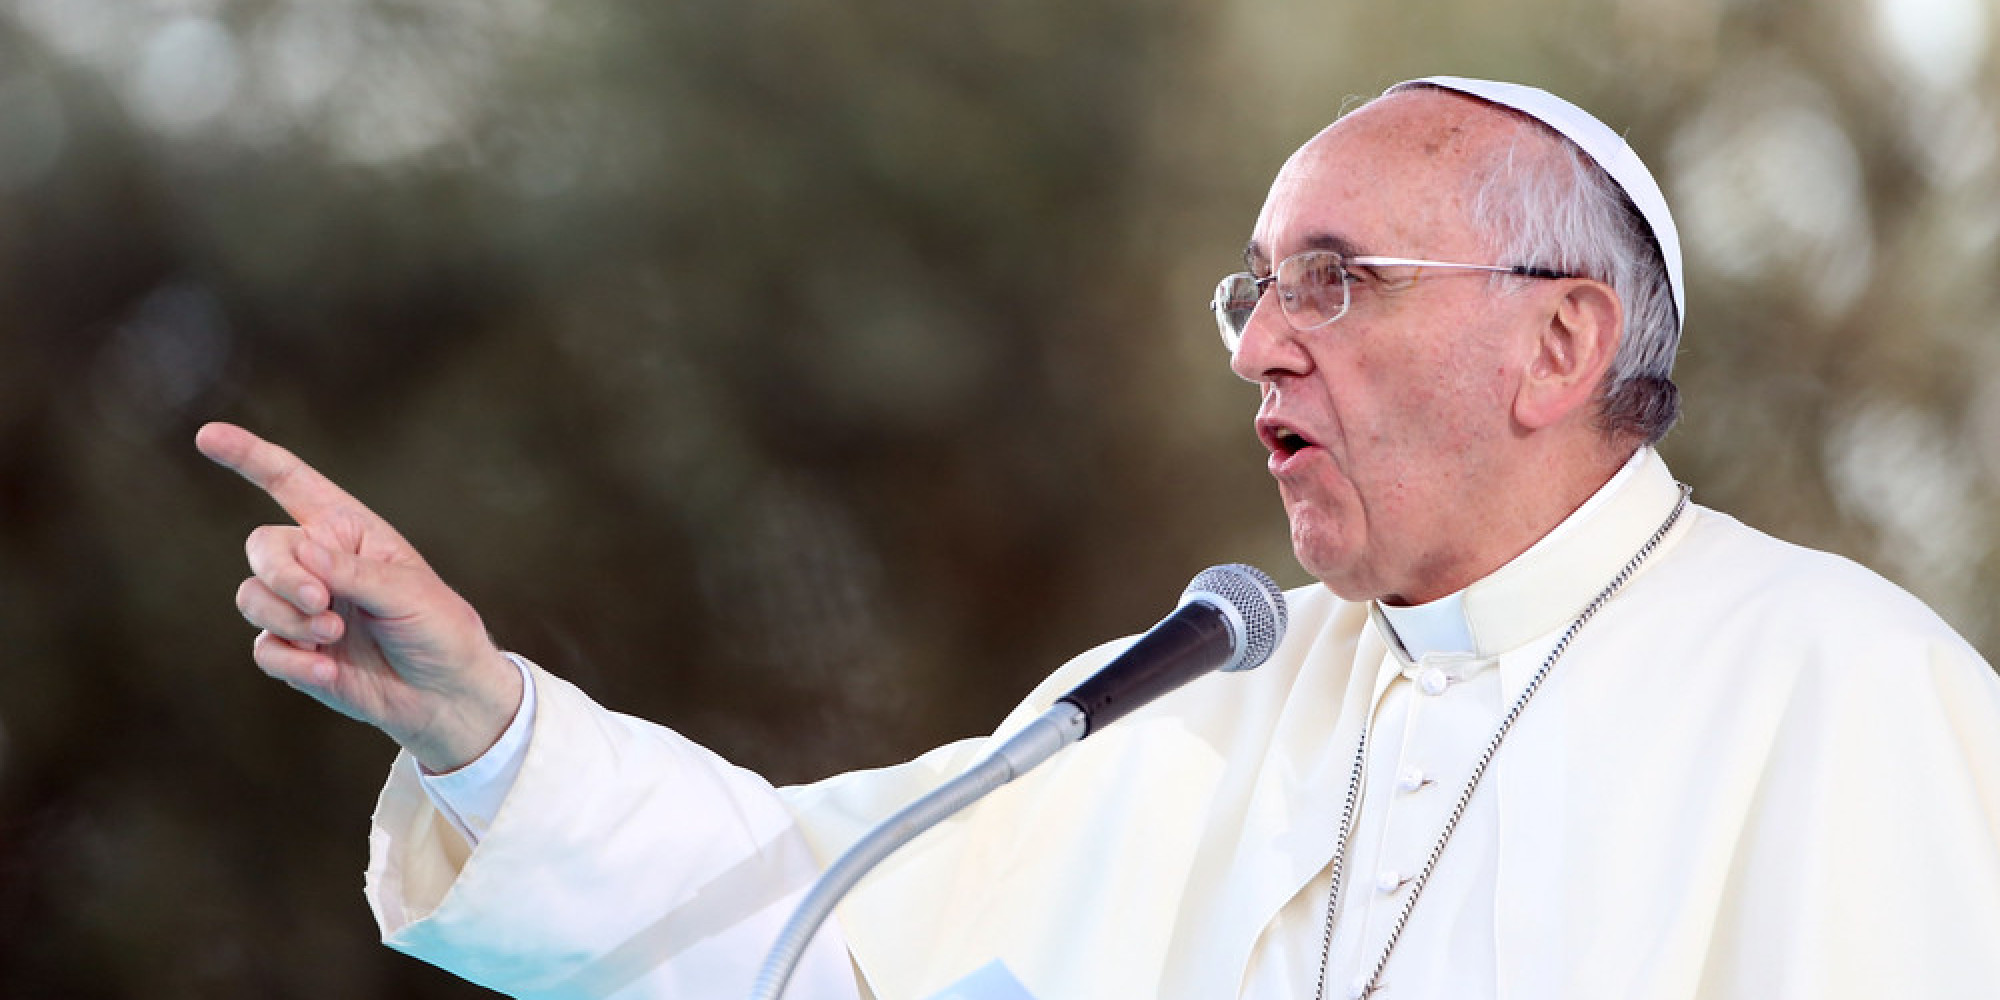 Quotes From The Pope: Pope Francis' Most Controversial Quotes